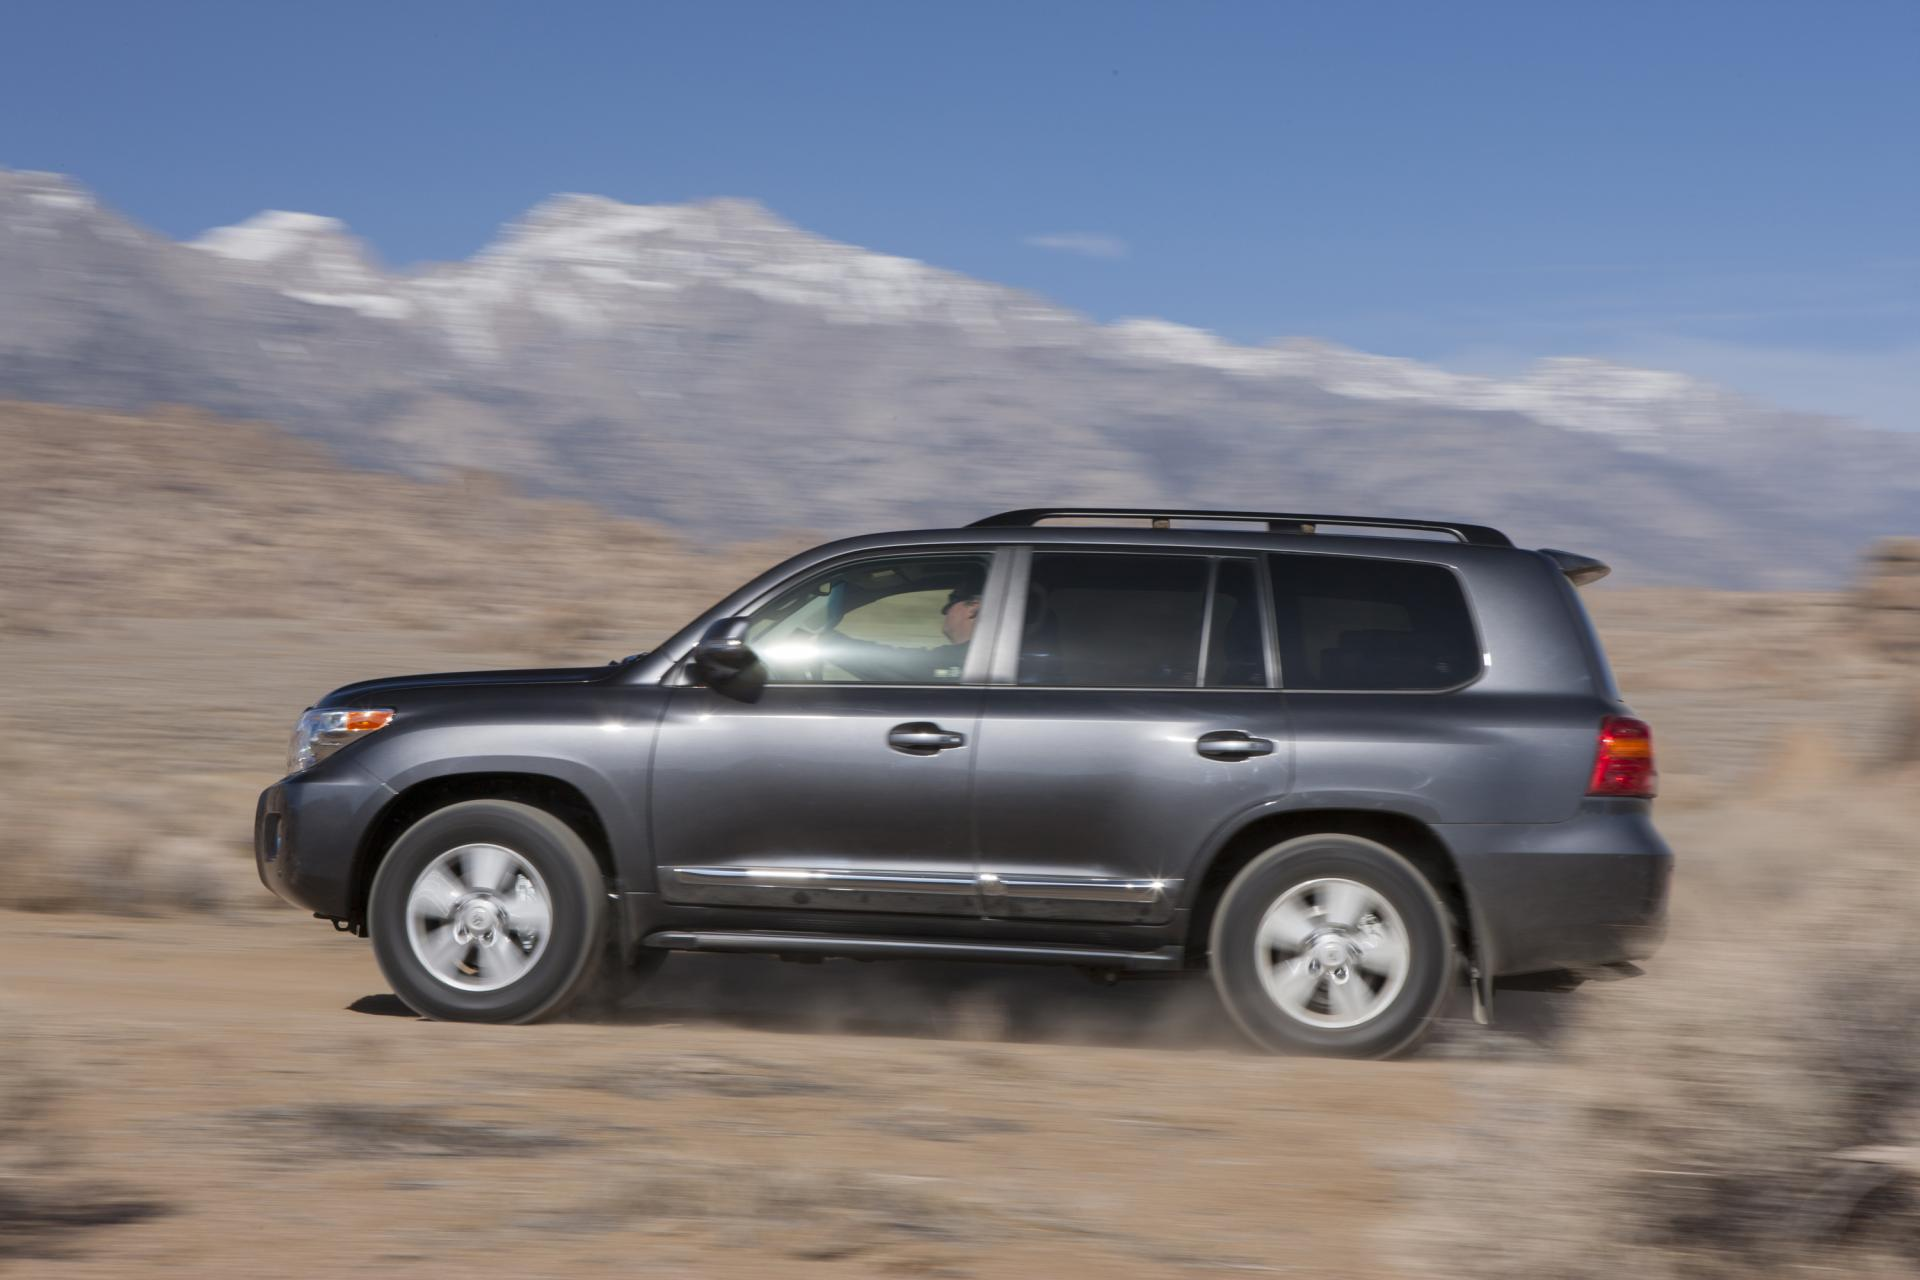 2014 Toyota Land Cruiser News And Information